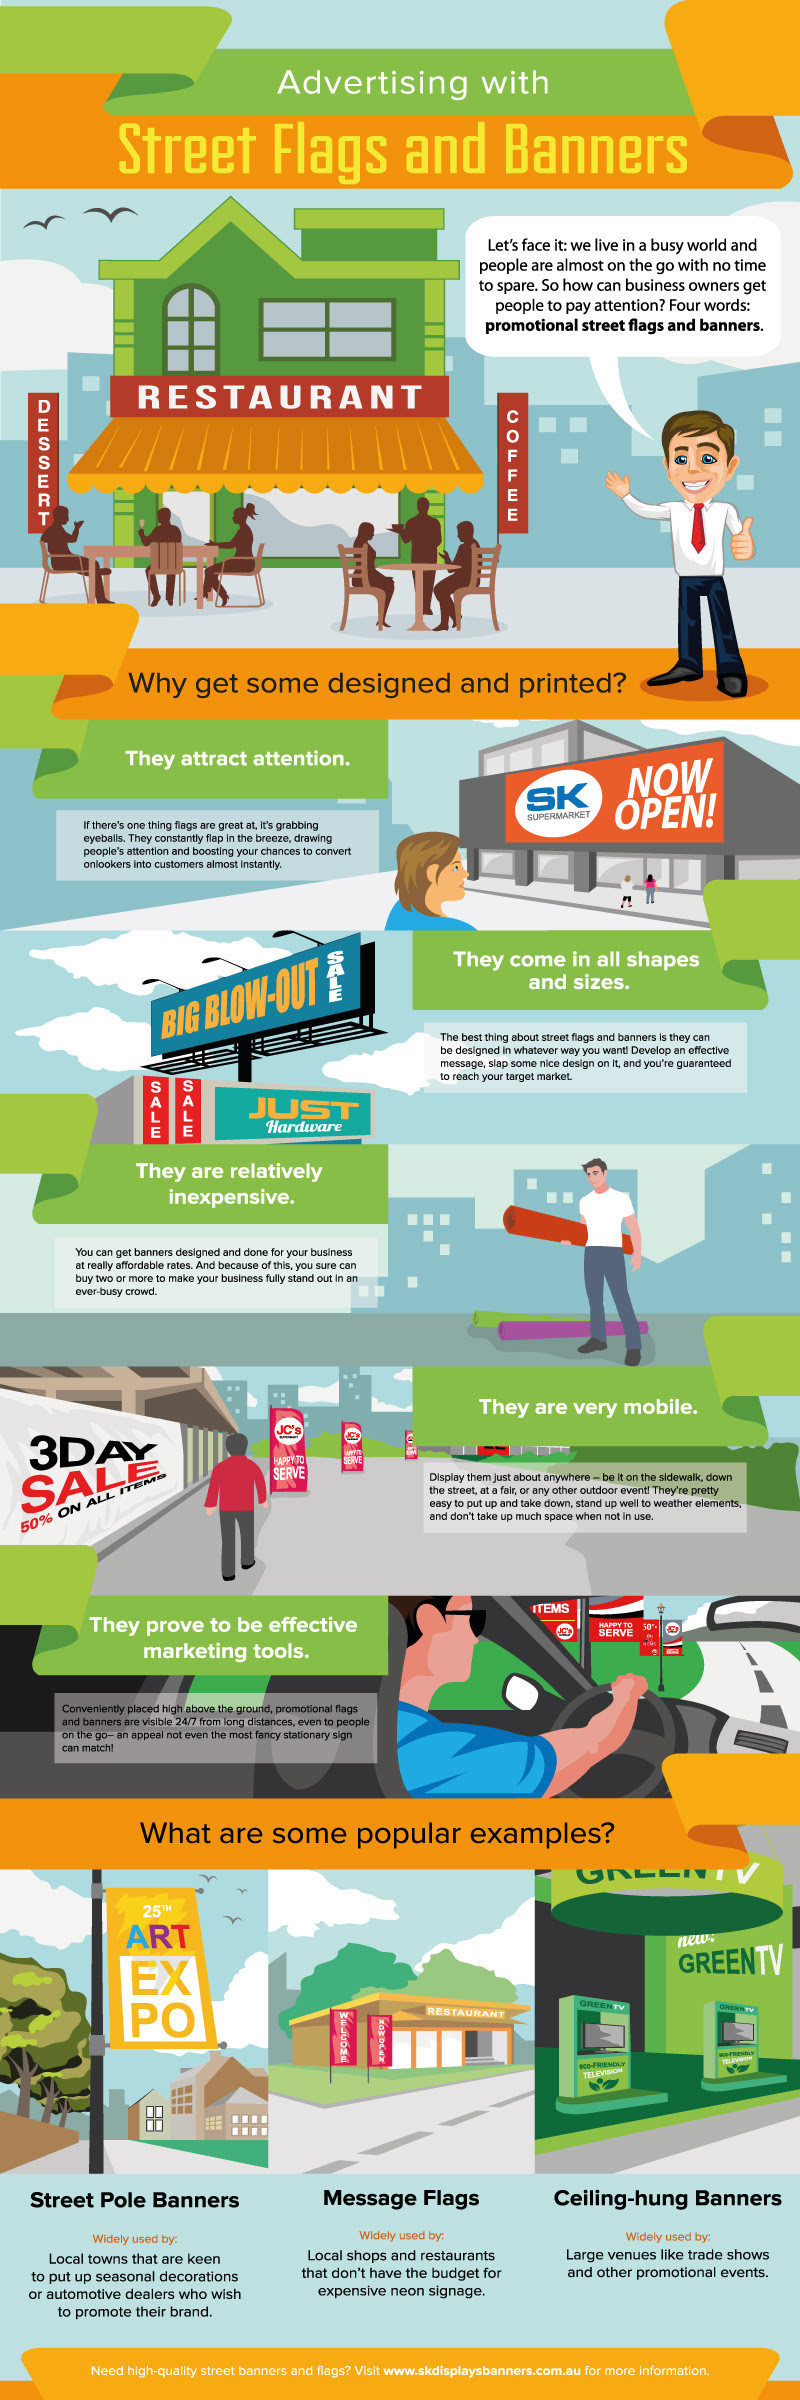 Infographic: Advertising with Street Flags and Banners #infographic